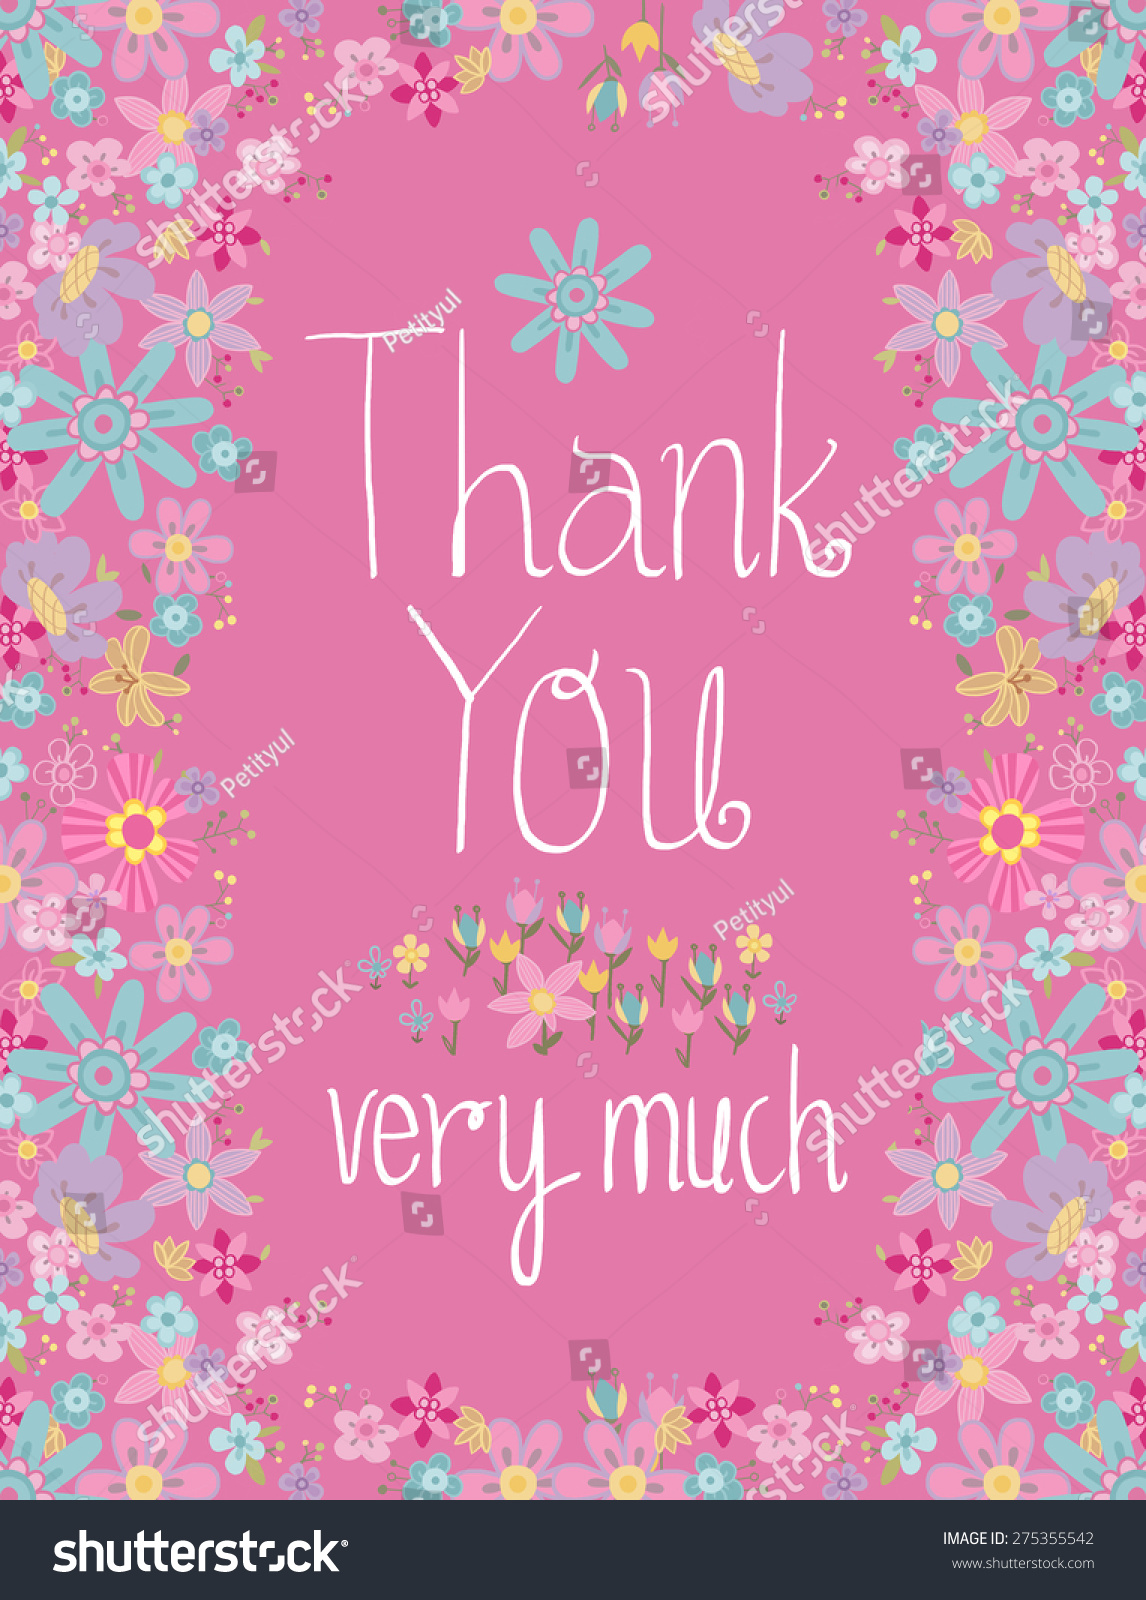 Greeting Card With Thank You Lettering And Flowers And Leaves Around